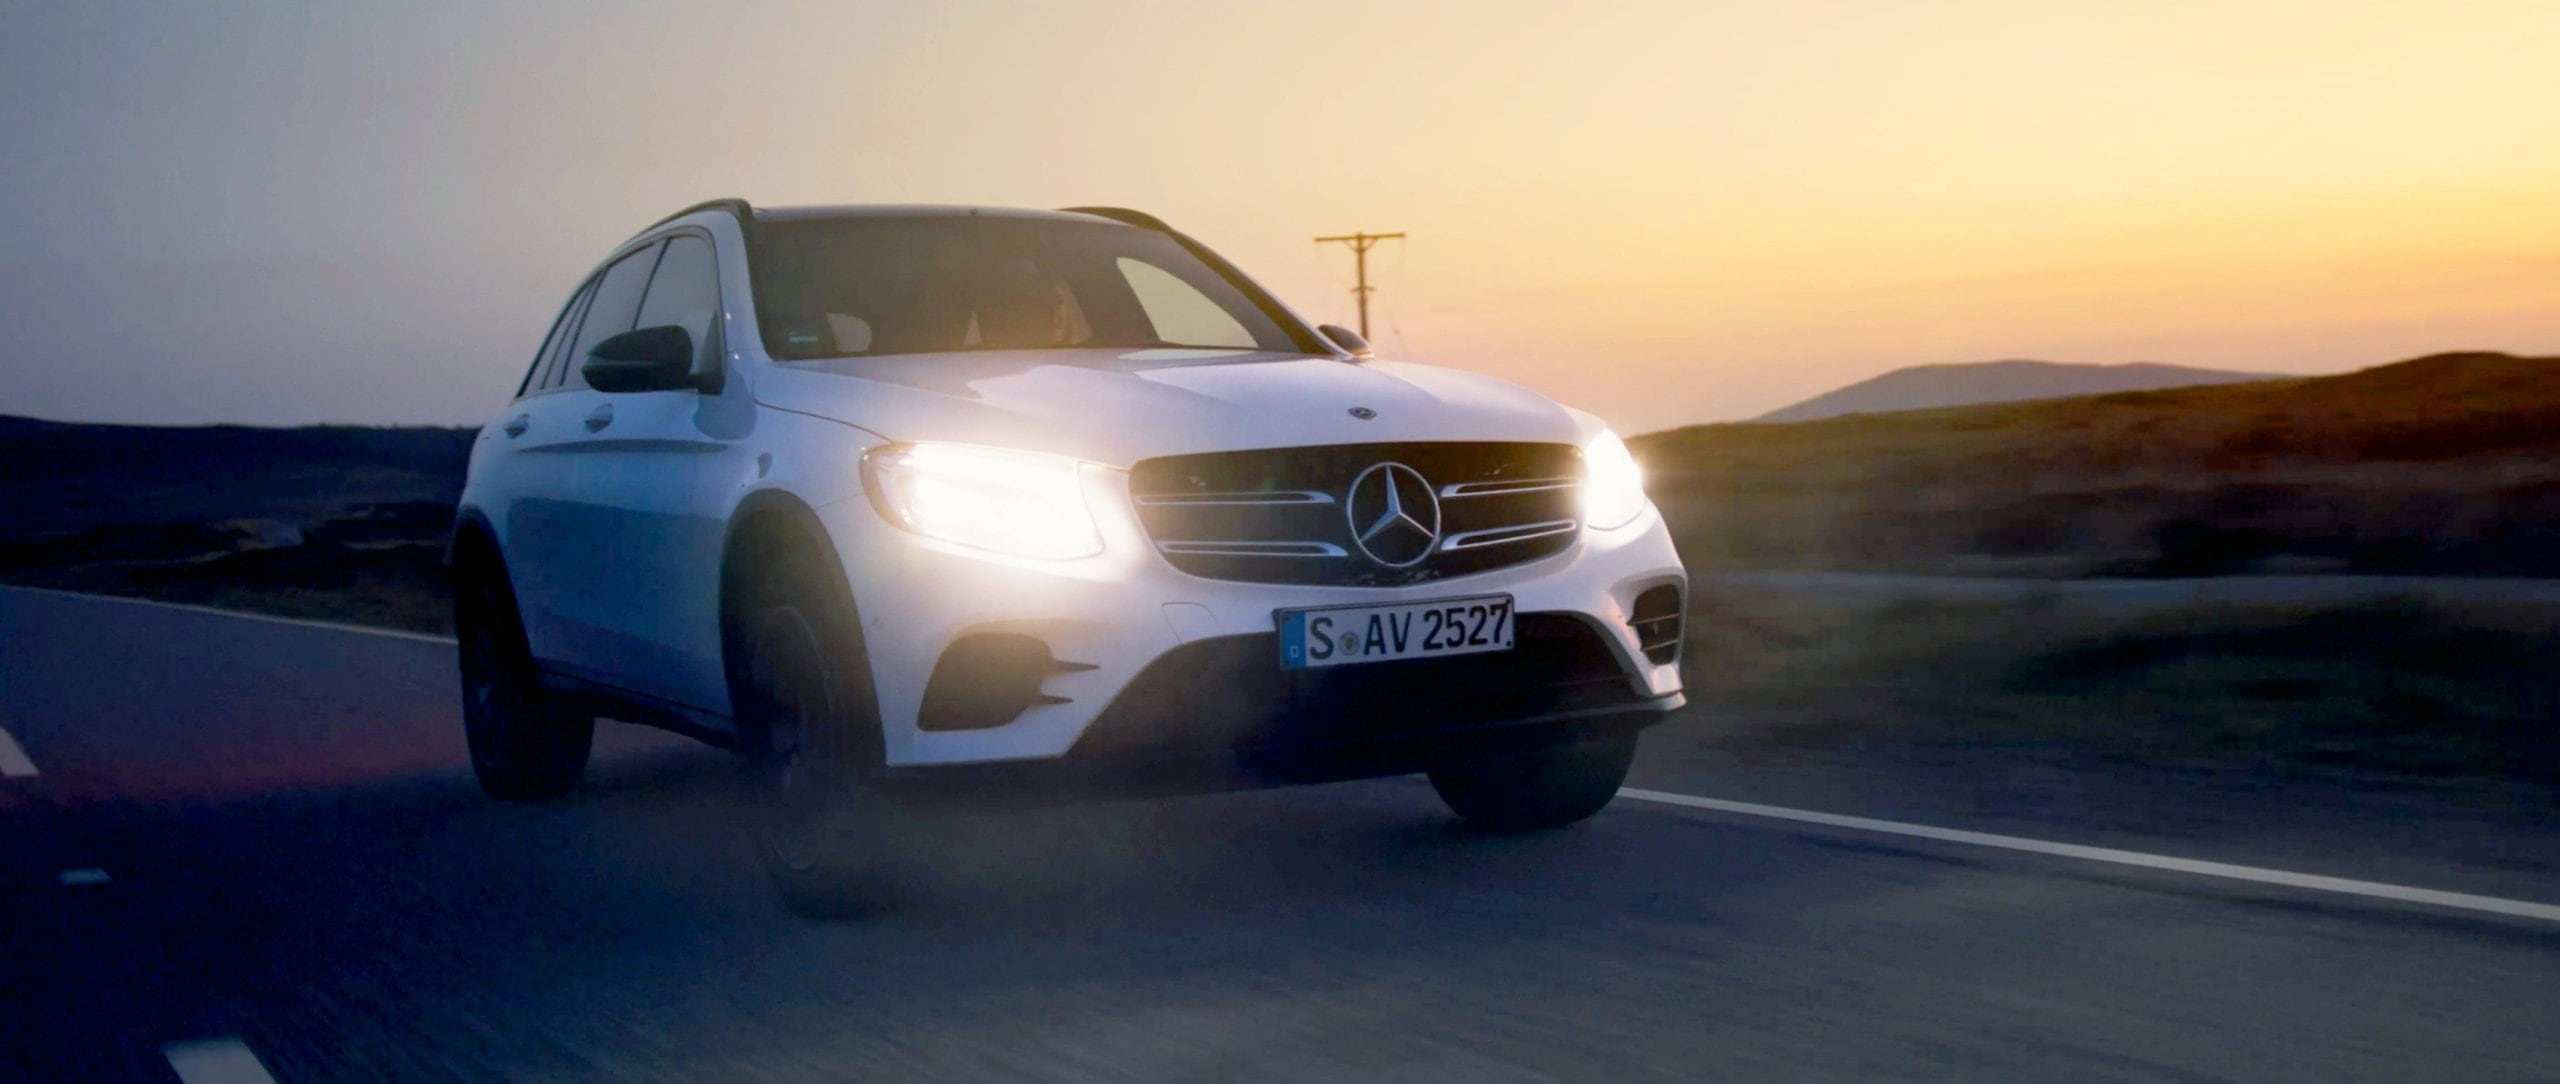 Mercedes-Benz – #MBvideocar: The Mercedes-Benz GLC 250 d 4MATIC (X 253) in Scottland.